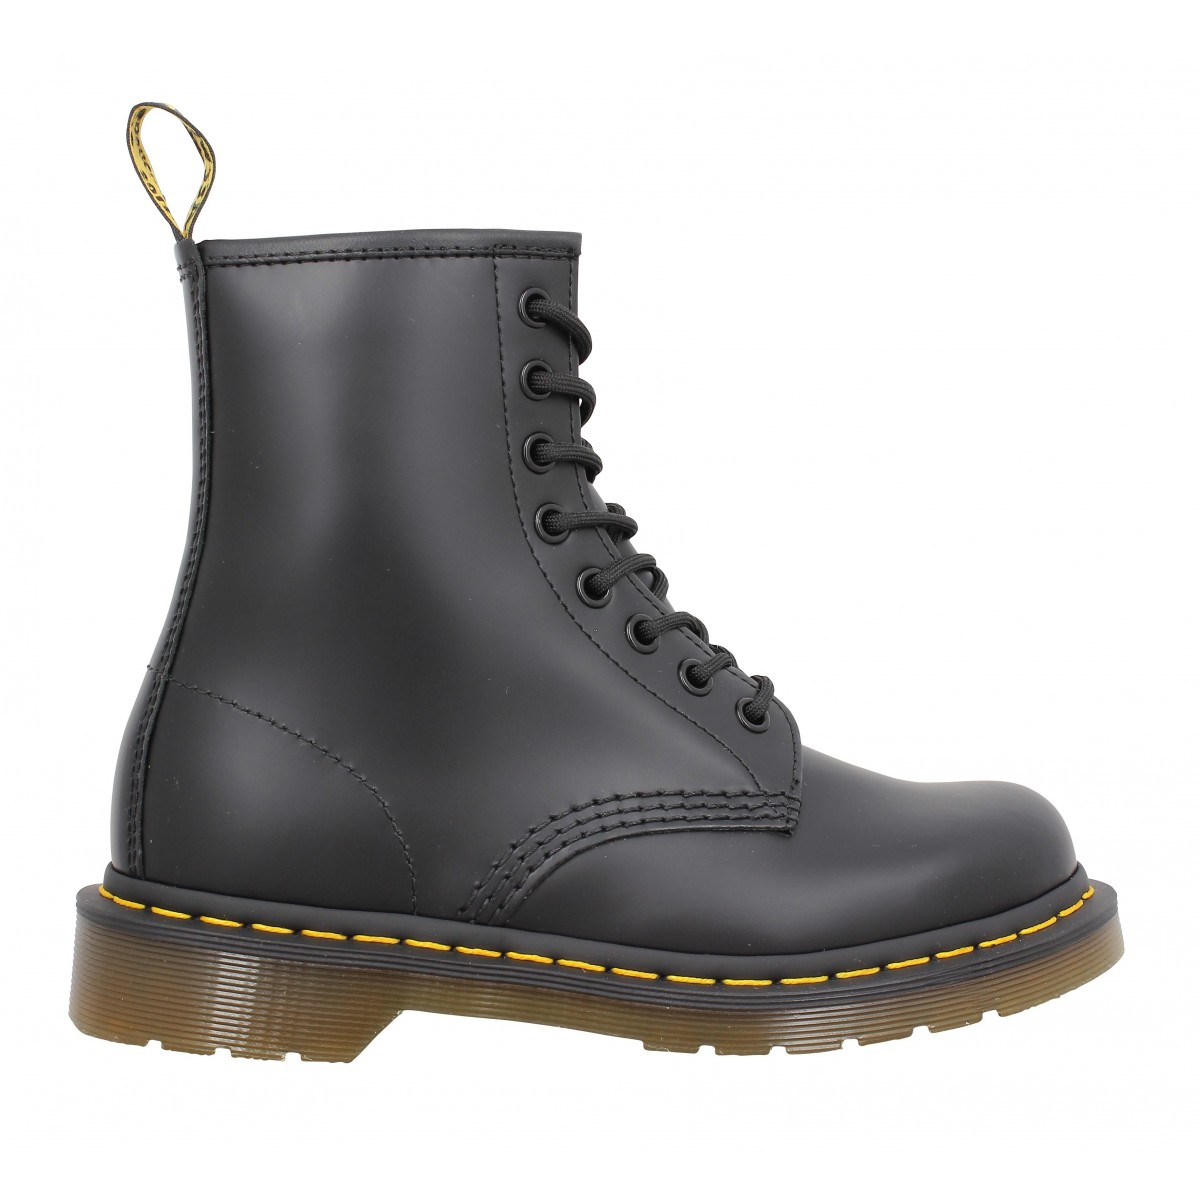 dr martens 1460 cuir femme noir femme fanny chaussures. Black Bedroom Furniture Sets. Home Design Ideas